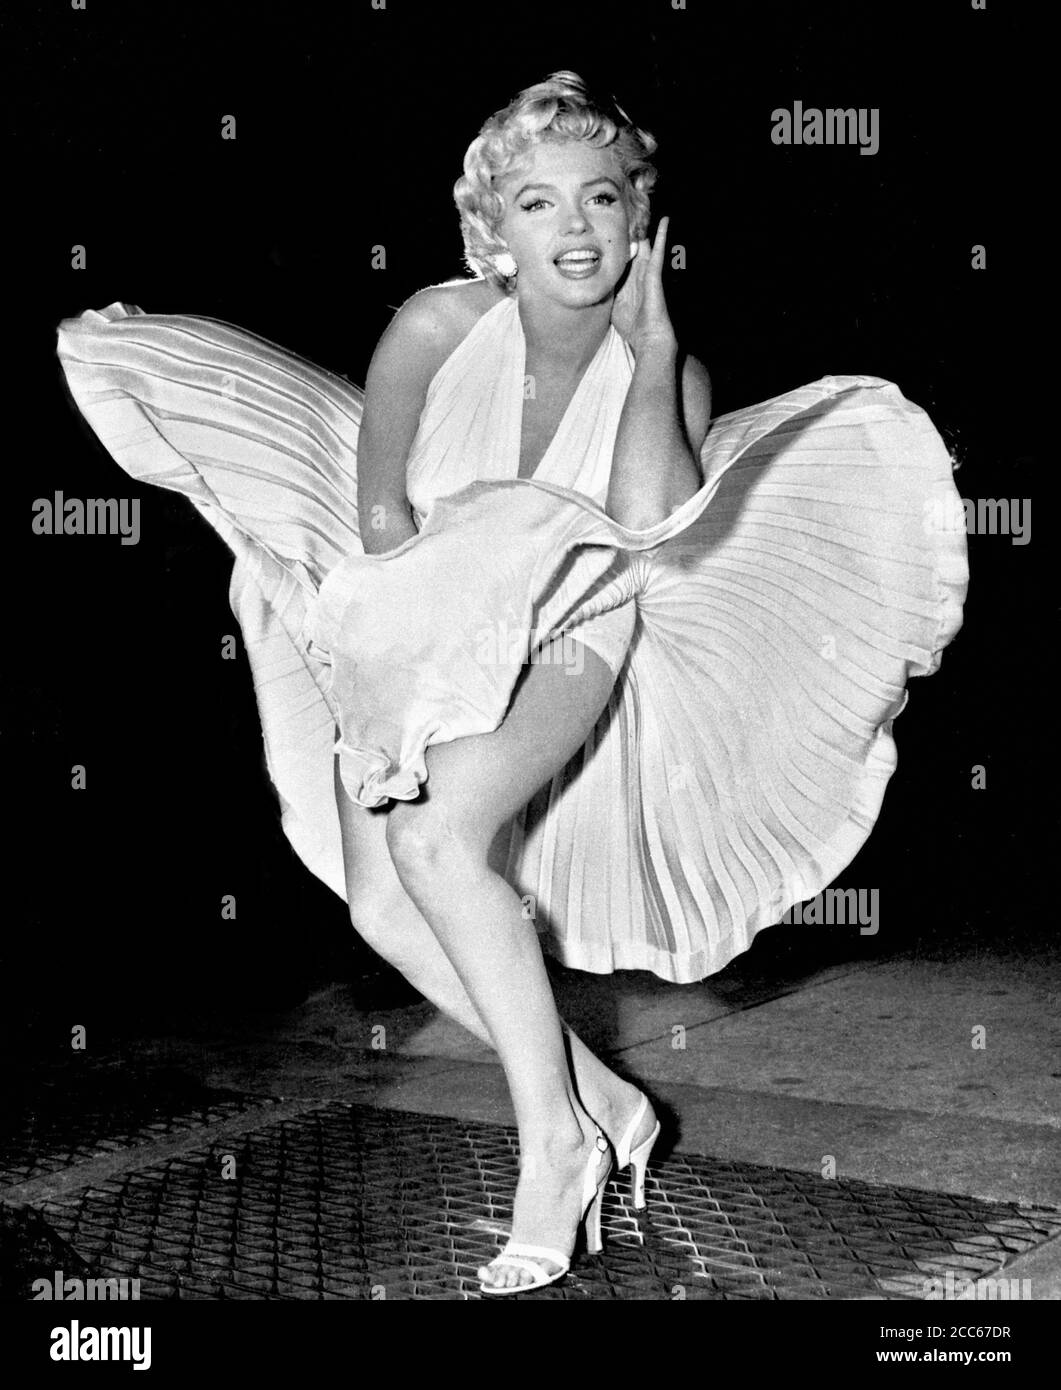 Marilyn Monroe con gonna bilowing. Scatto iconico dell'attrice americana scattata nel 1954, mentre filmava il Seven Year itch a New York City. Foto Stock